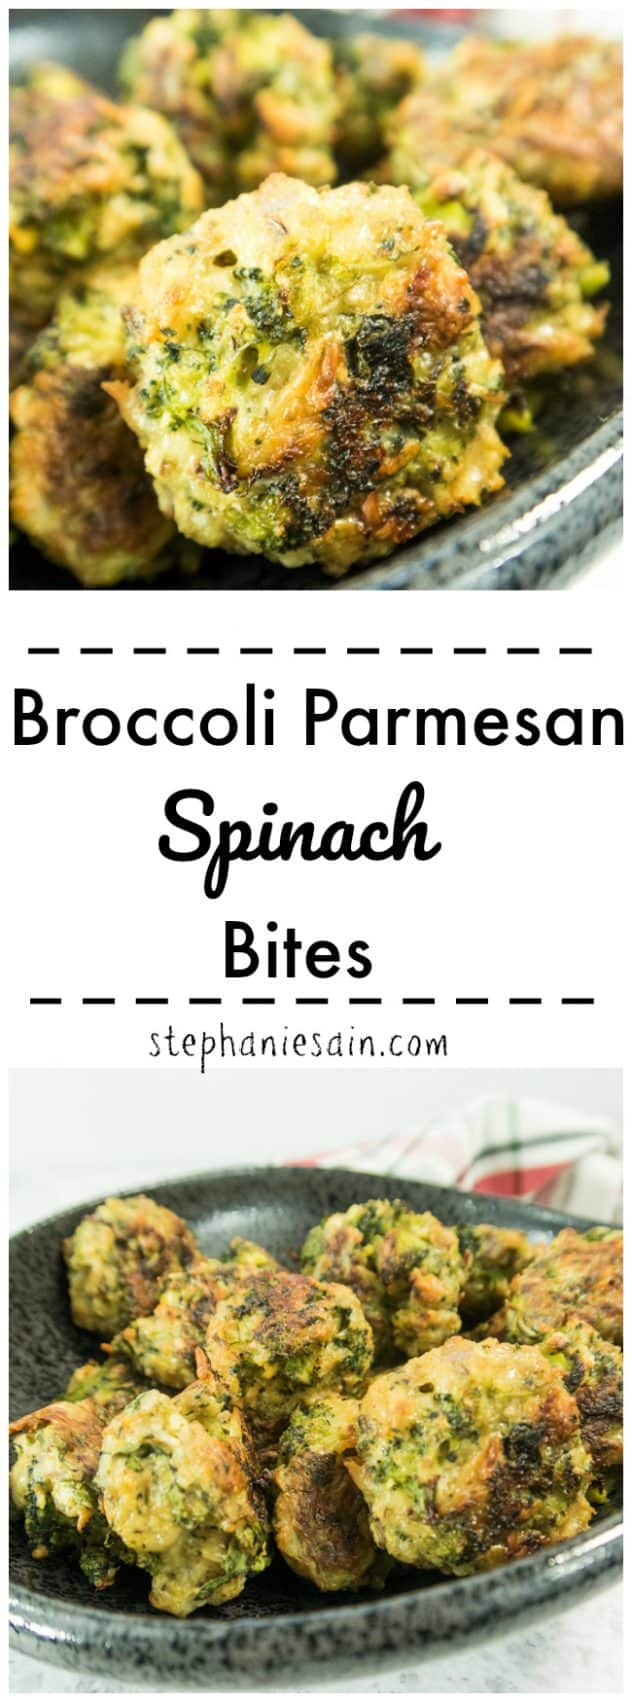 These Broccoli Parmesan Spinach Bites are the perfect tasty little treat. Perfect for snacking or an appetizer. Also makes a great main course option. Loaded with healthy veggies and even goes great with your favorite dipping sauce. Gluten Free & Vegetarian.